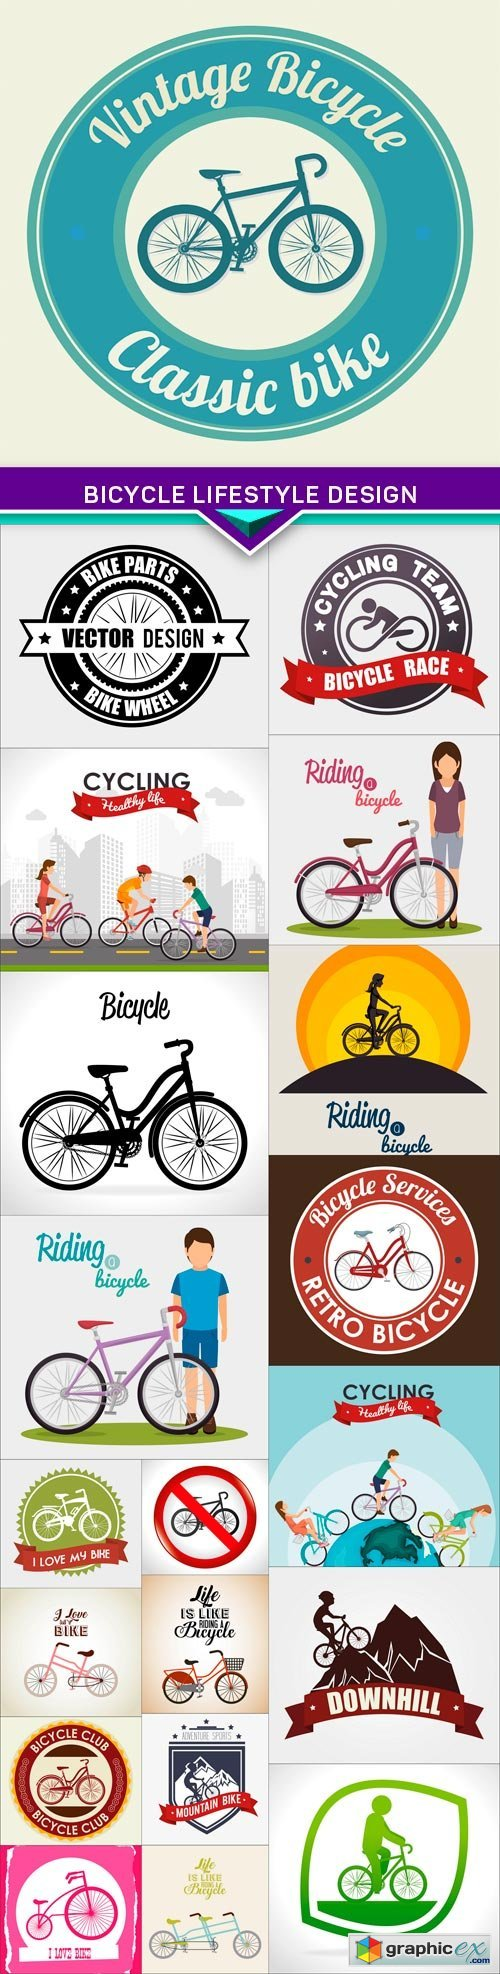 Bicycle lifestyle design 20X EPS